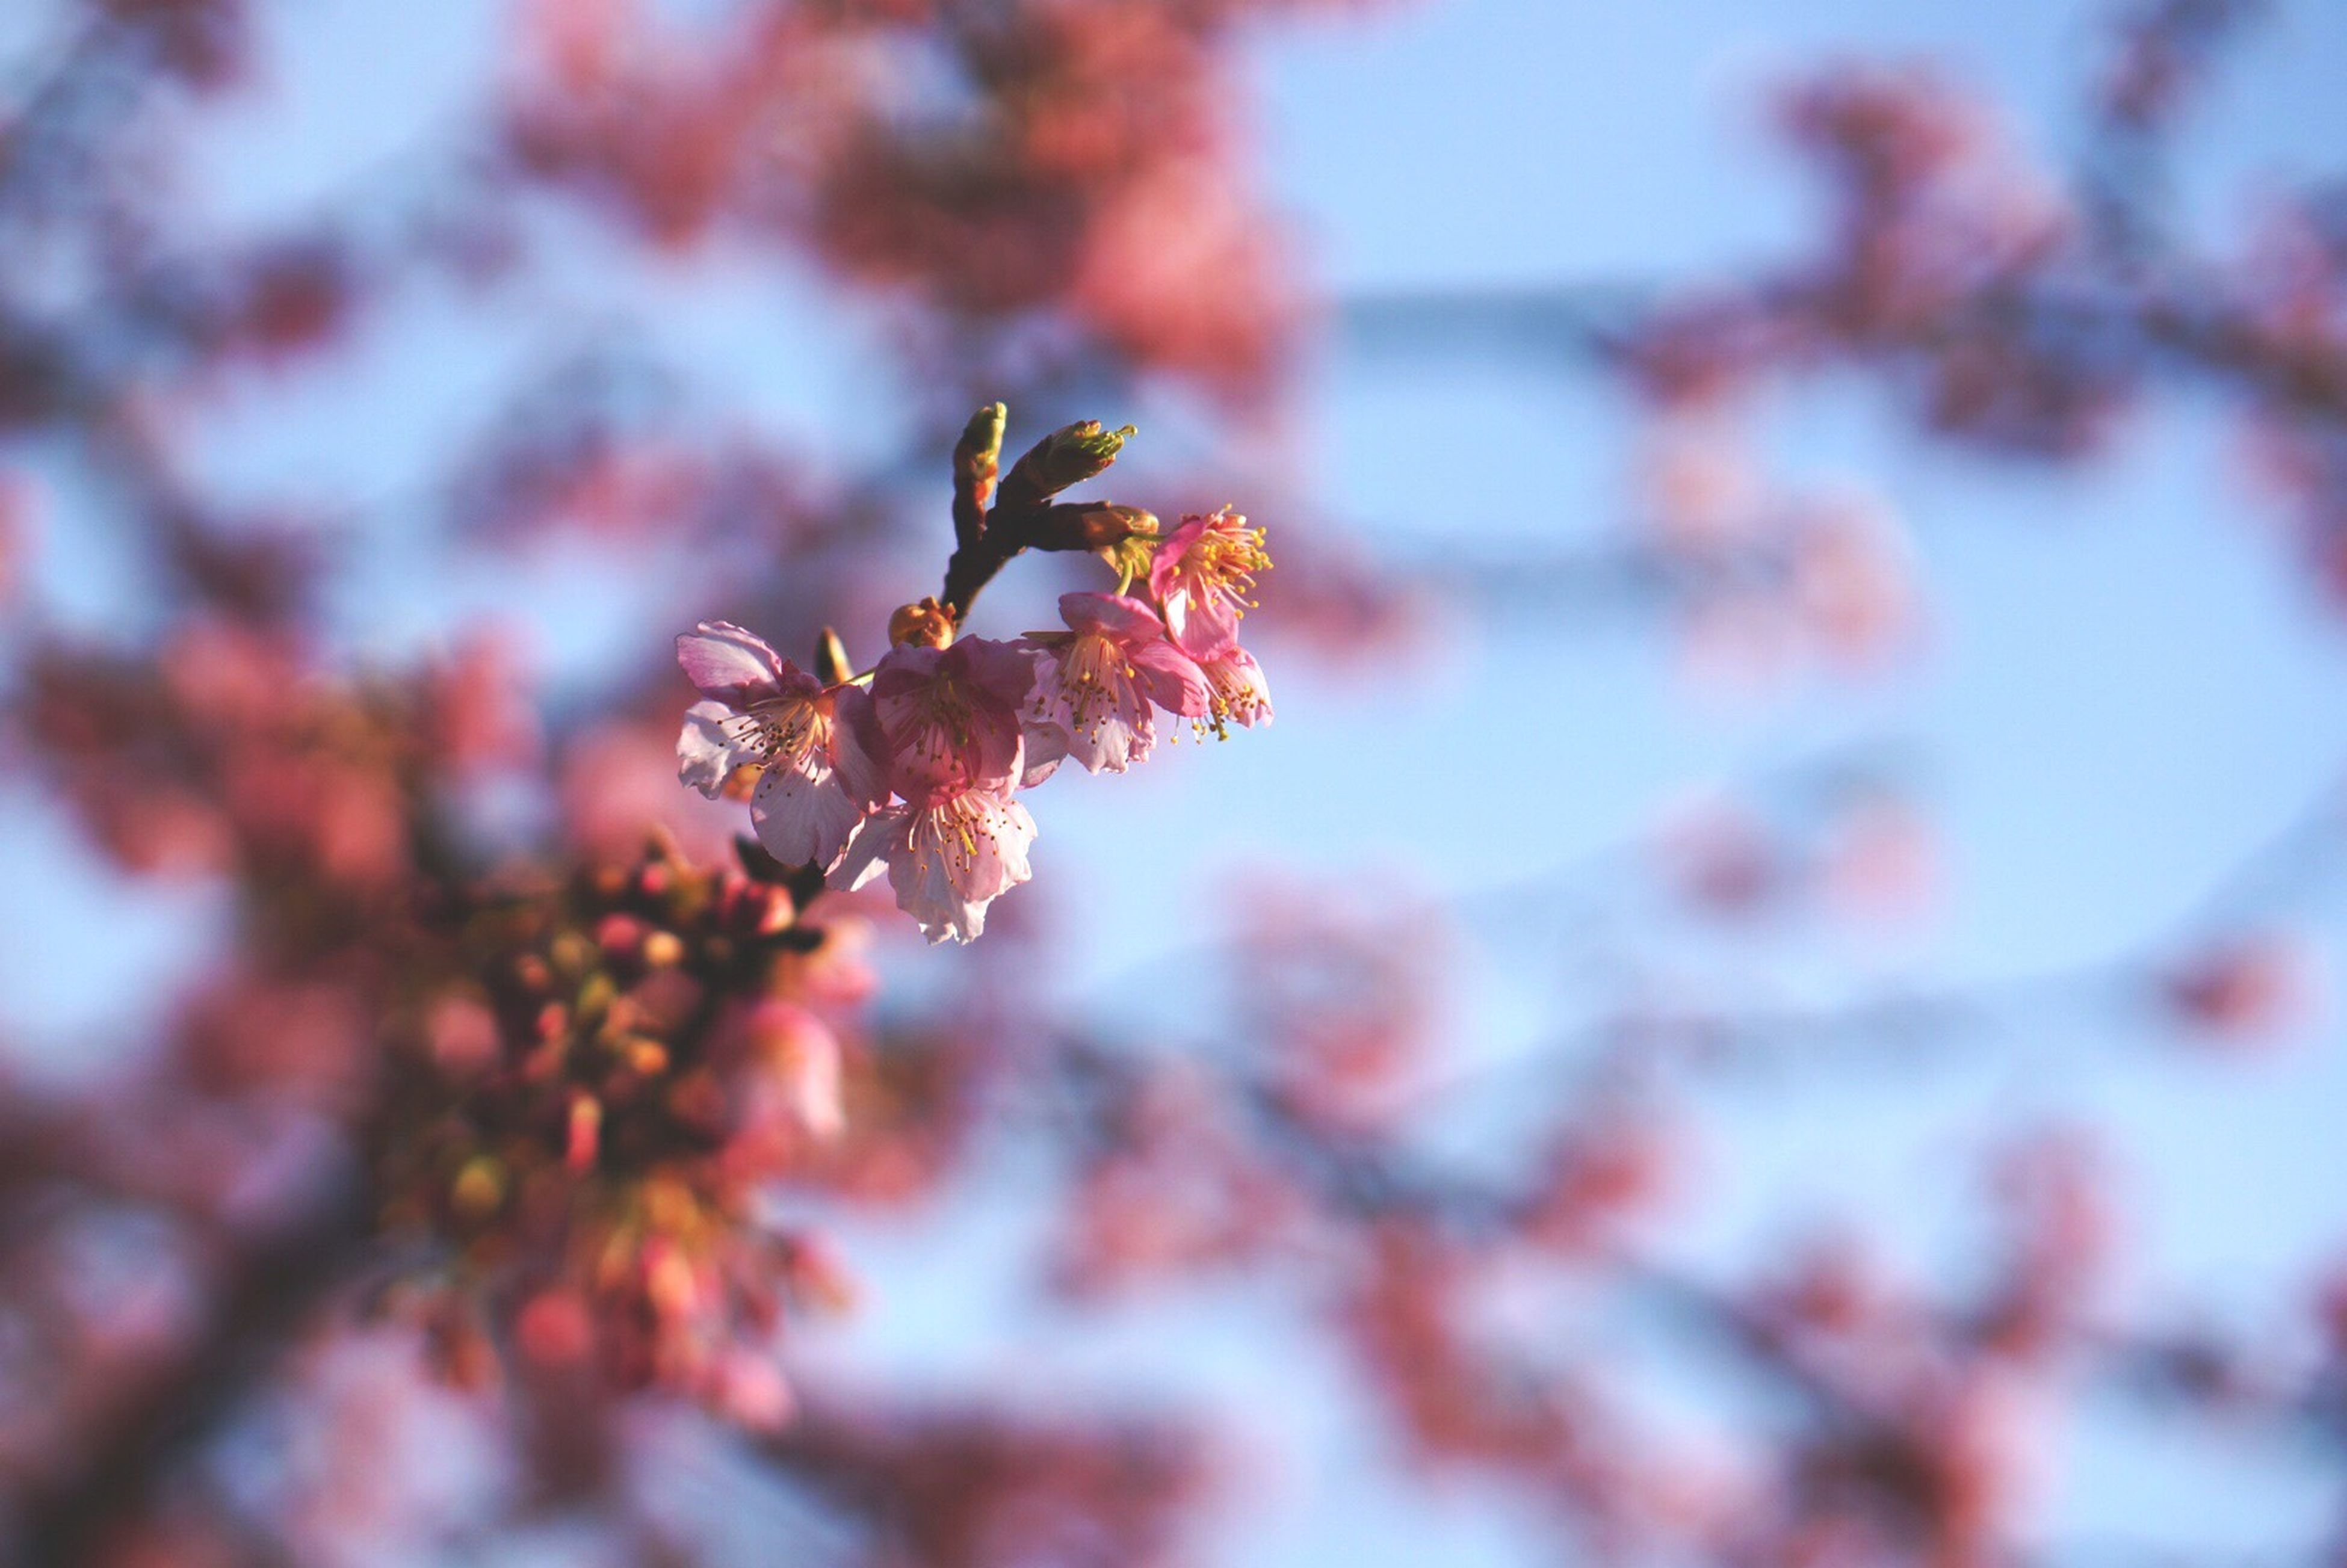 flower, freshness, growth, branch, tree, beauty in nature, fragility, nature, focus on foreground, blossom, close-up, low angle view, cherry blossom, pink color, cherry tree, selective focus, twig, in bloom, springtime, blooming